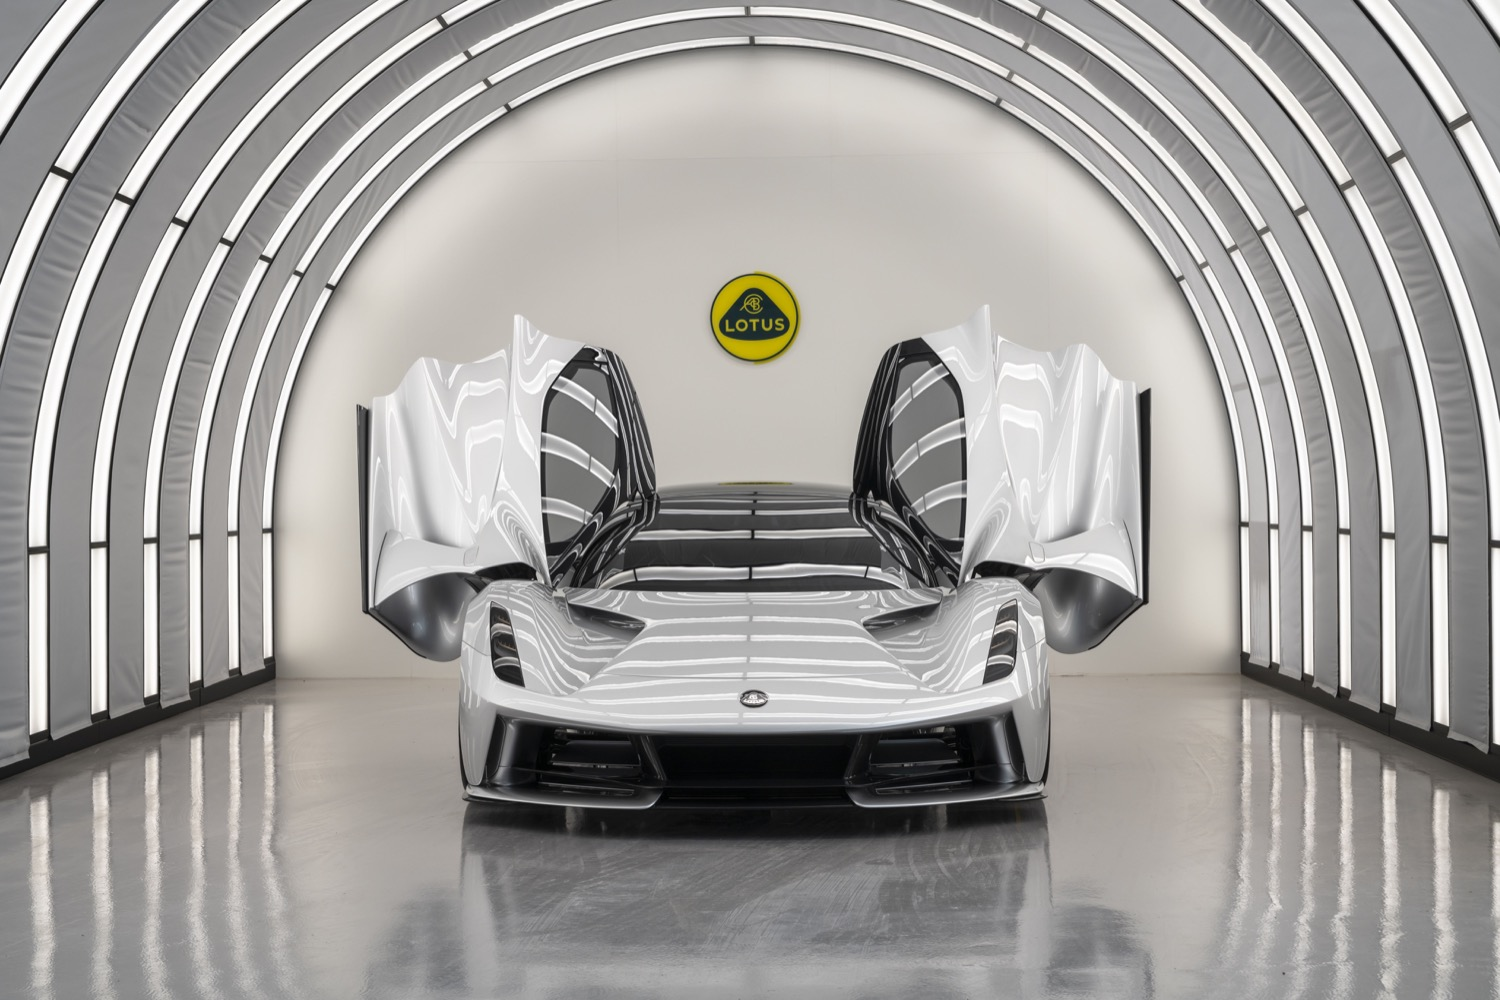 2020_lotus_evija_hypercar_electric_07